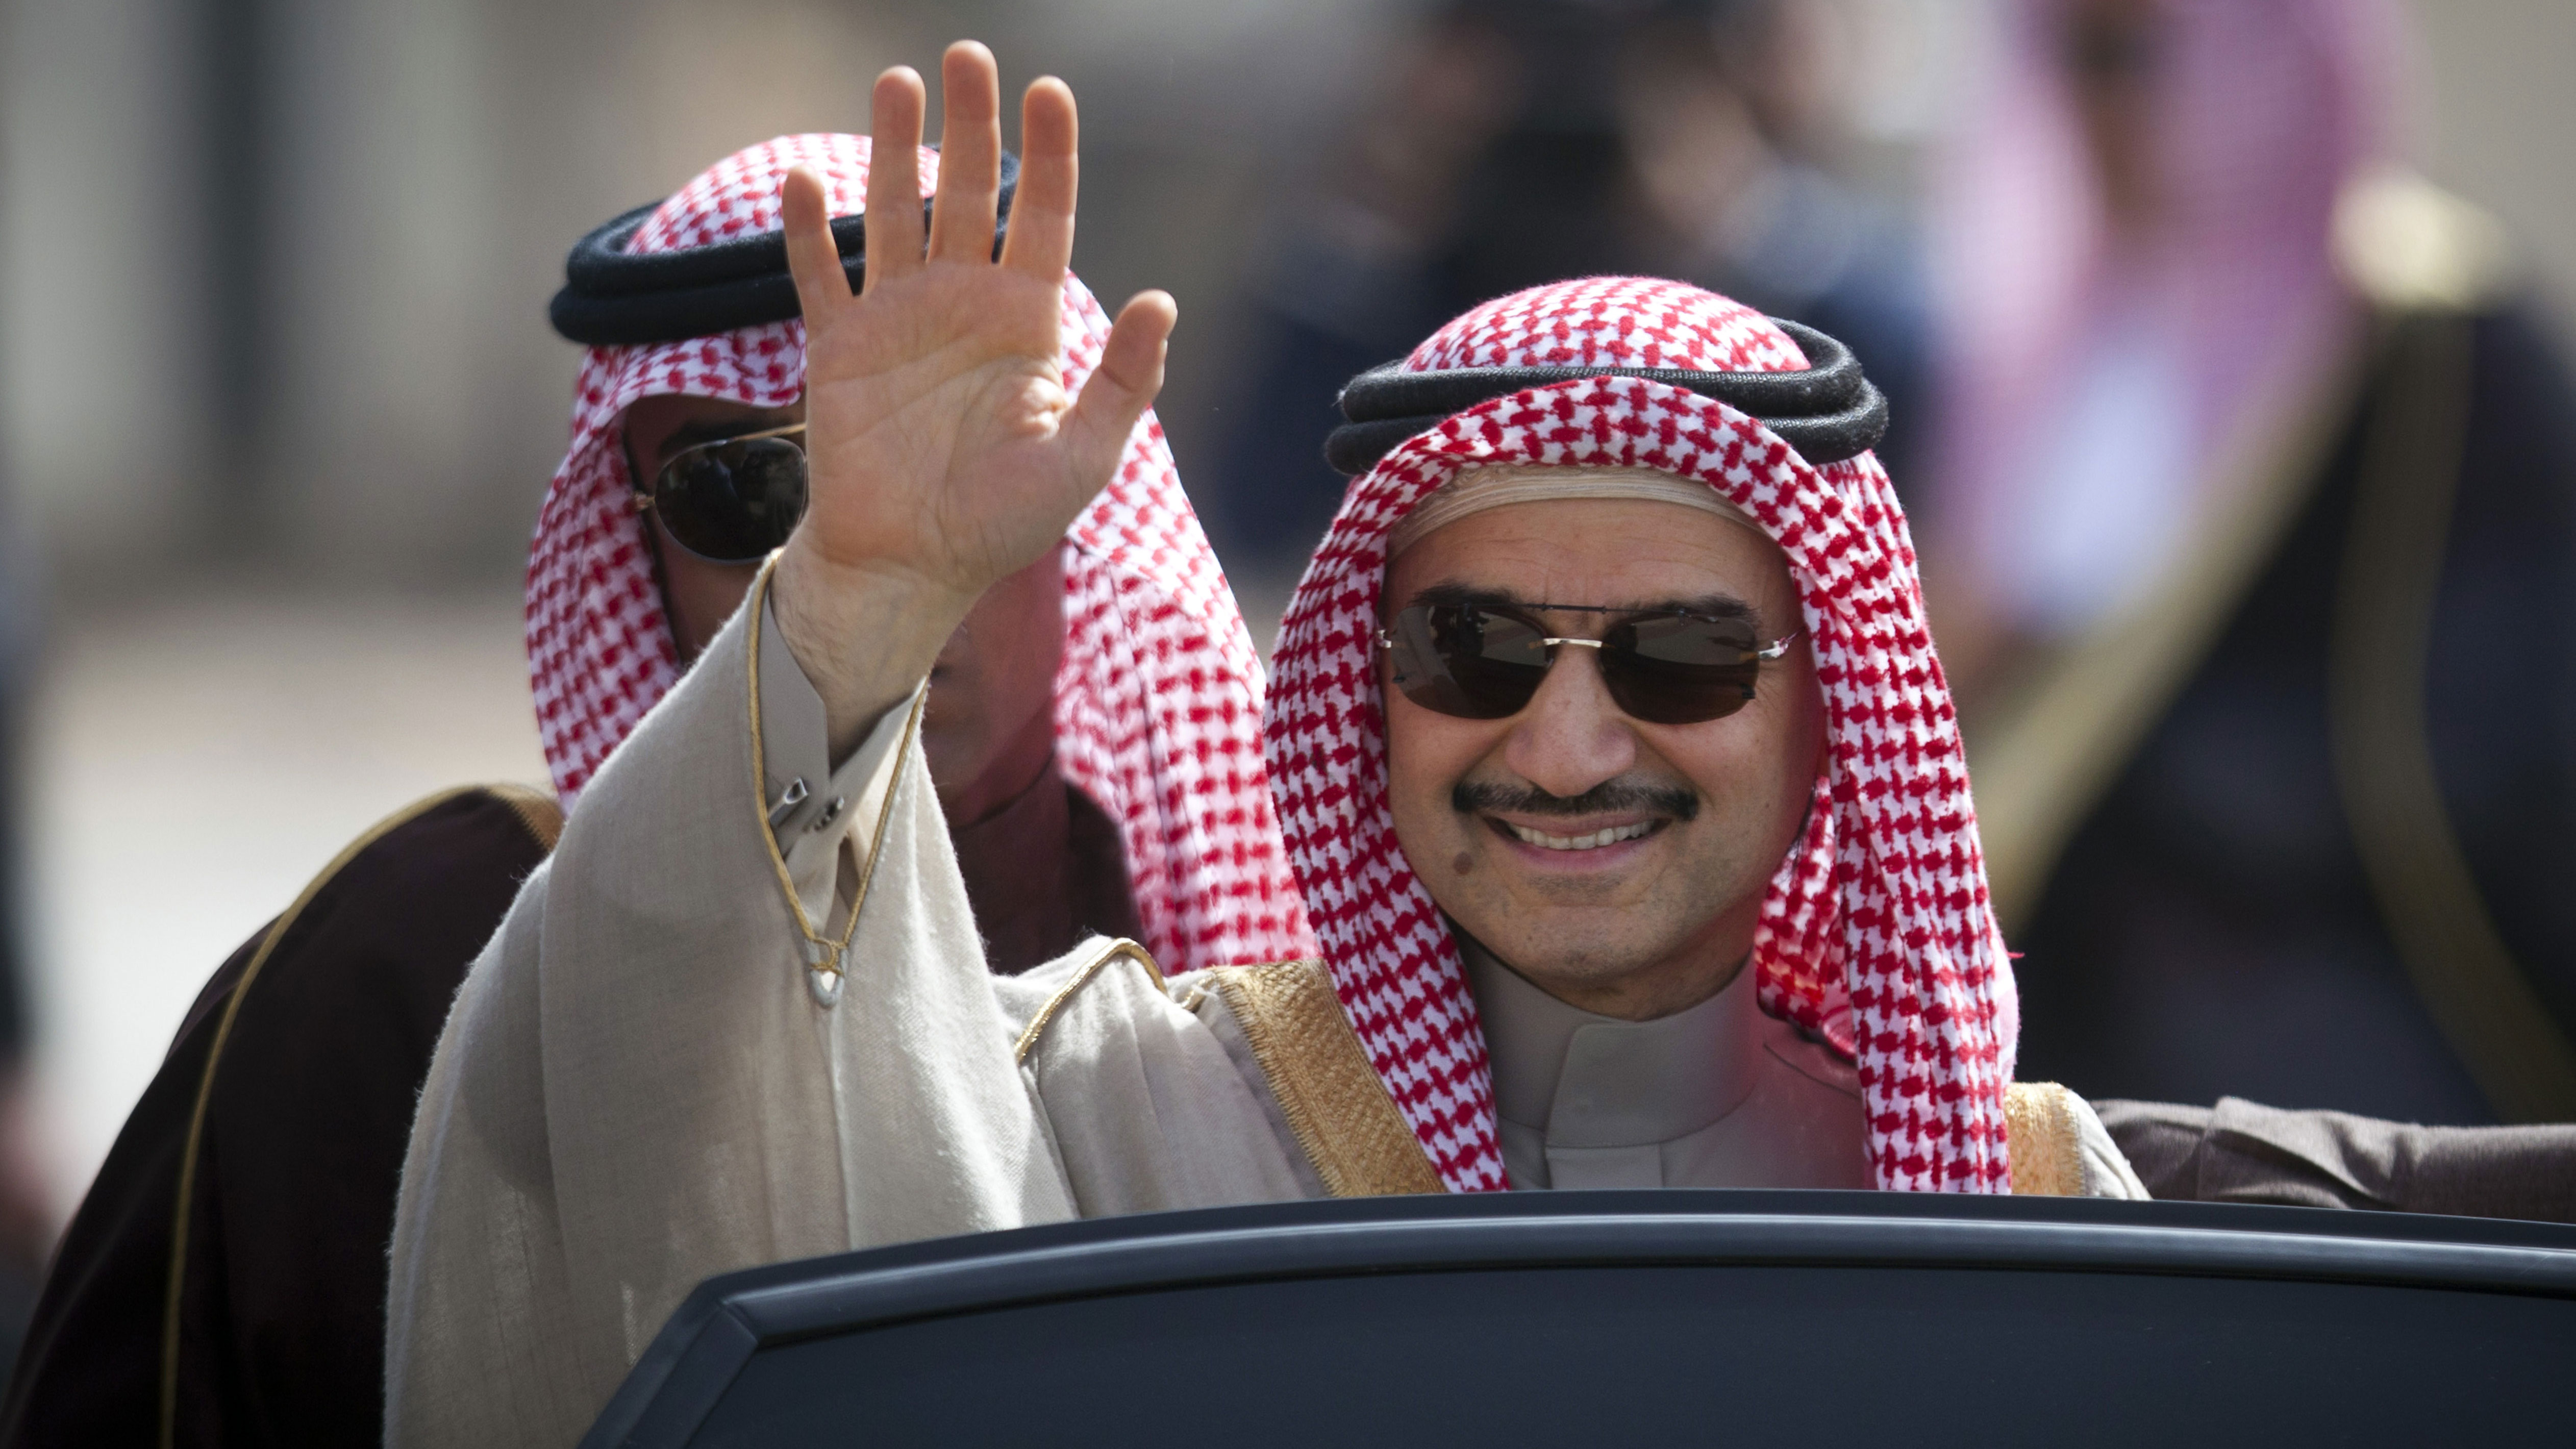 FILE - In this Feb. 4, 2014 file photo, Saudi billionaire Prince Alwaleed bin Talal, waves as he arrives at the headquarters of Palestinian President Mahmoud Abbas in the West Bank city of Ramallah. Bin Talal and his investment company have doubled their ownership of Twitter's publicly traded shares in the past six weeks. A joint statement released Wednesday, Oct. 7, 2015, by the prince and his Riyadh-based Kingdom Holding Company says their combined shares represent more than 5 percent of Twitter's common stock, with a market value of $1 billion. (AP Photo/Majdi Mohammed, File)